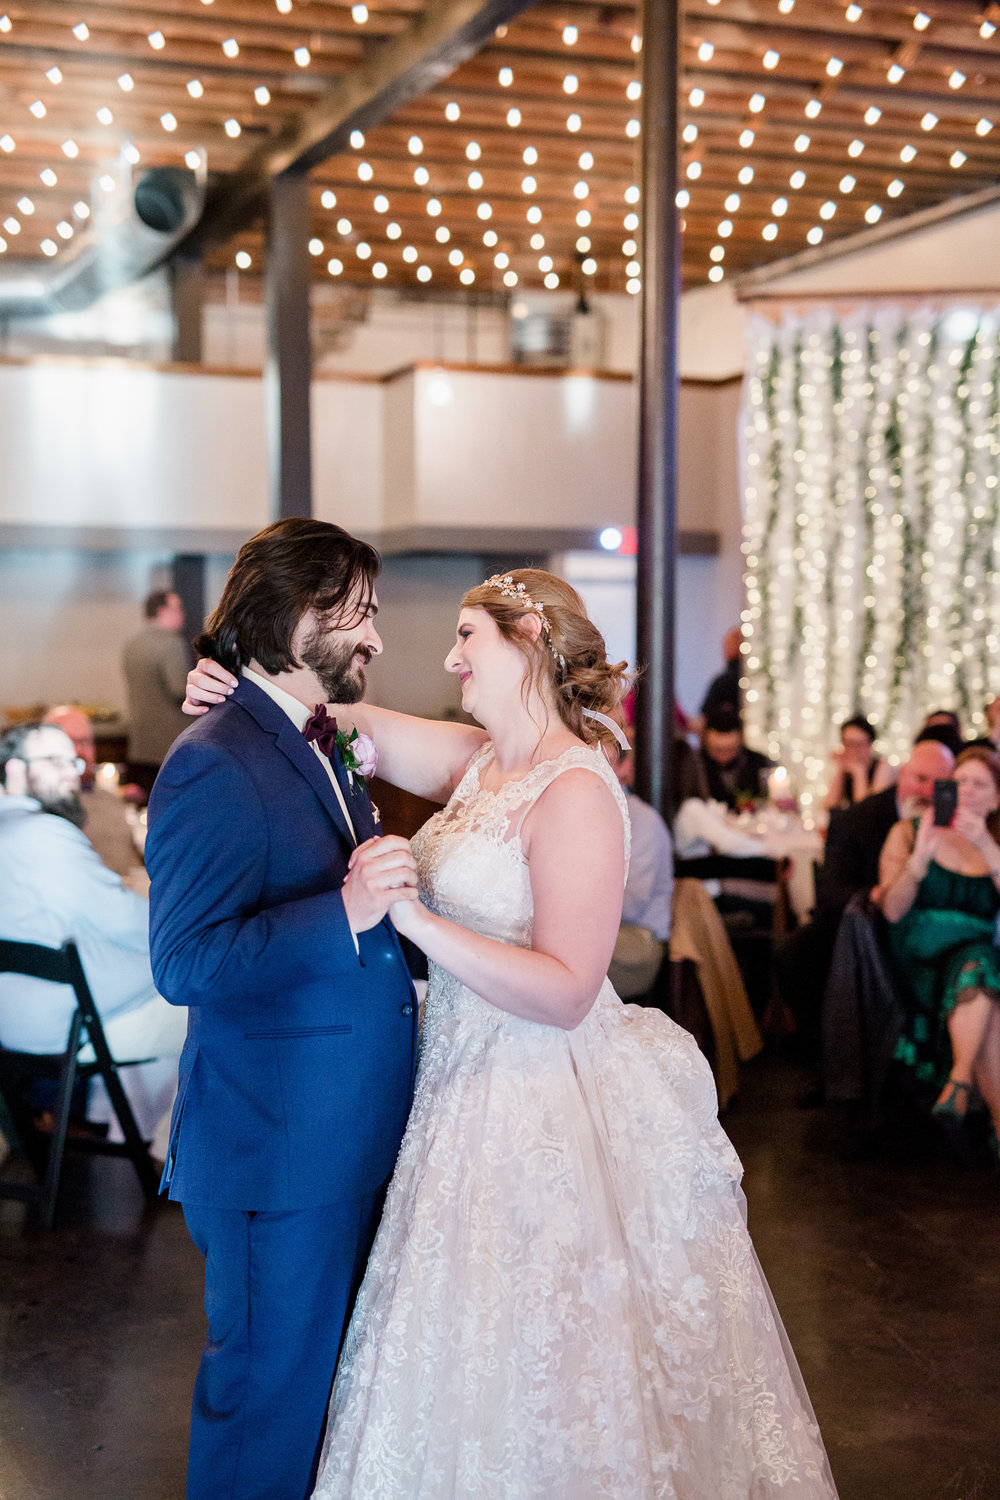 Downtown Knoxville Wedding Venue // Central Avenue Reception // Bridesmaids // First Dance under the Bistro Lights